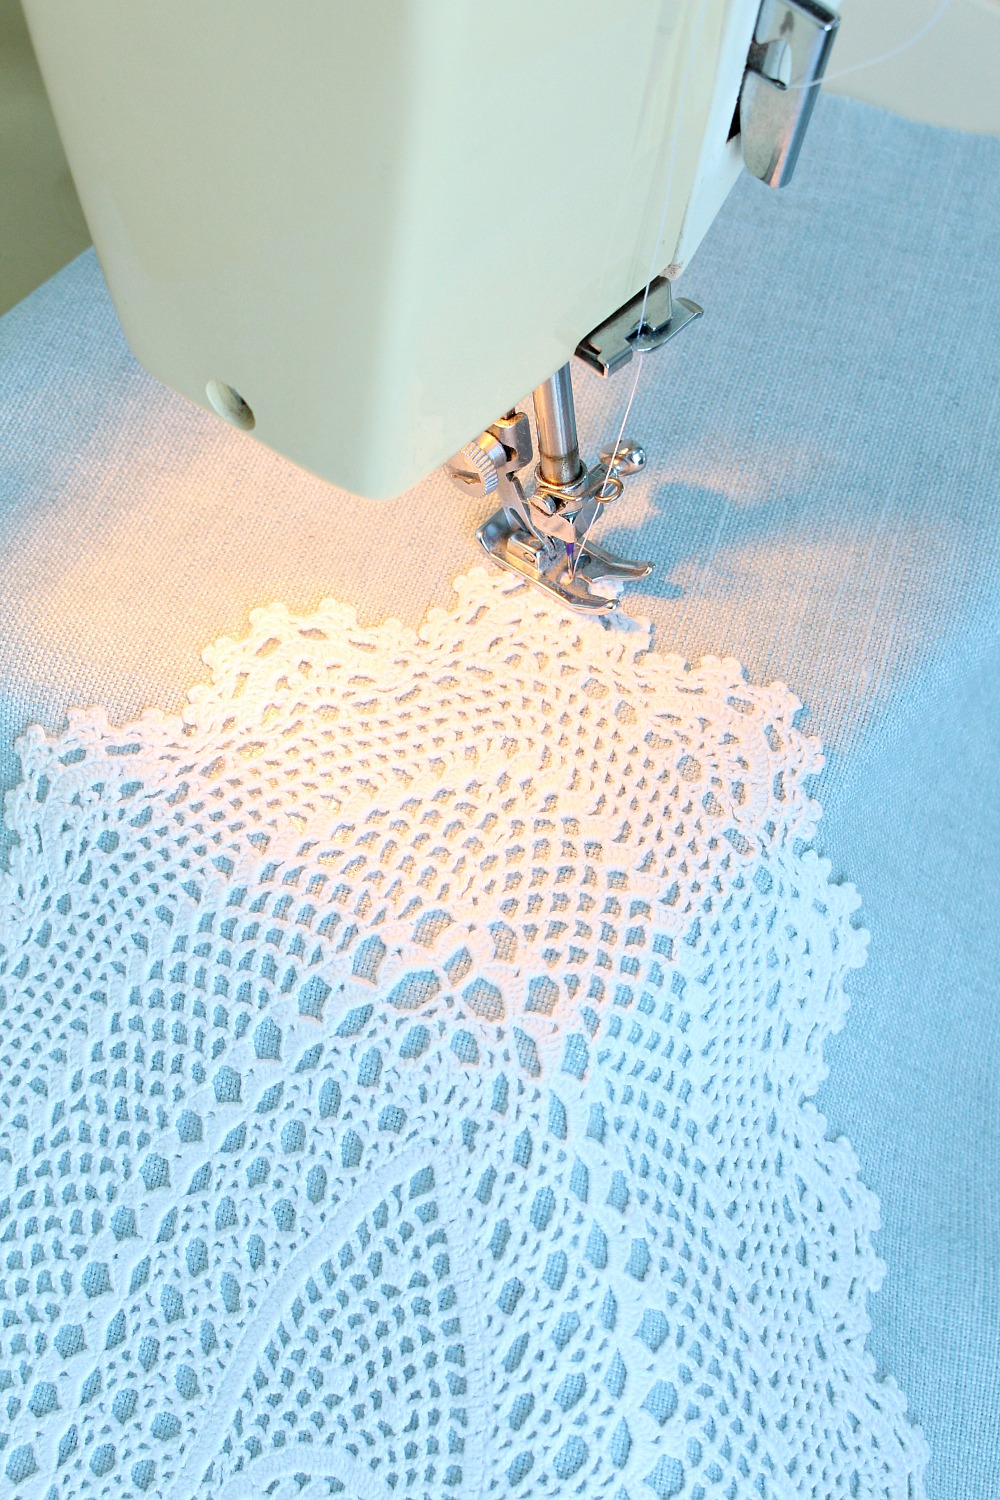 A diy sewed doily project